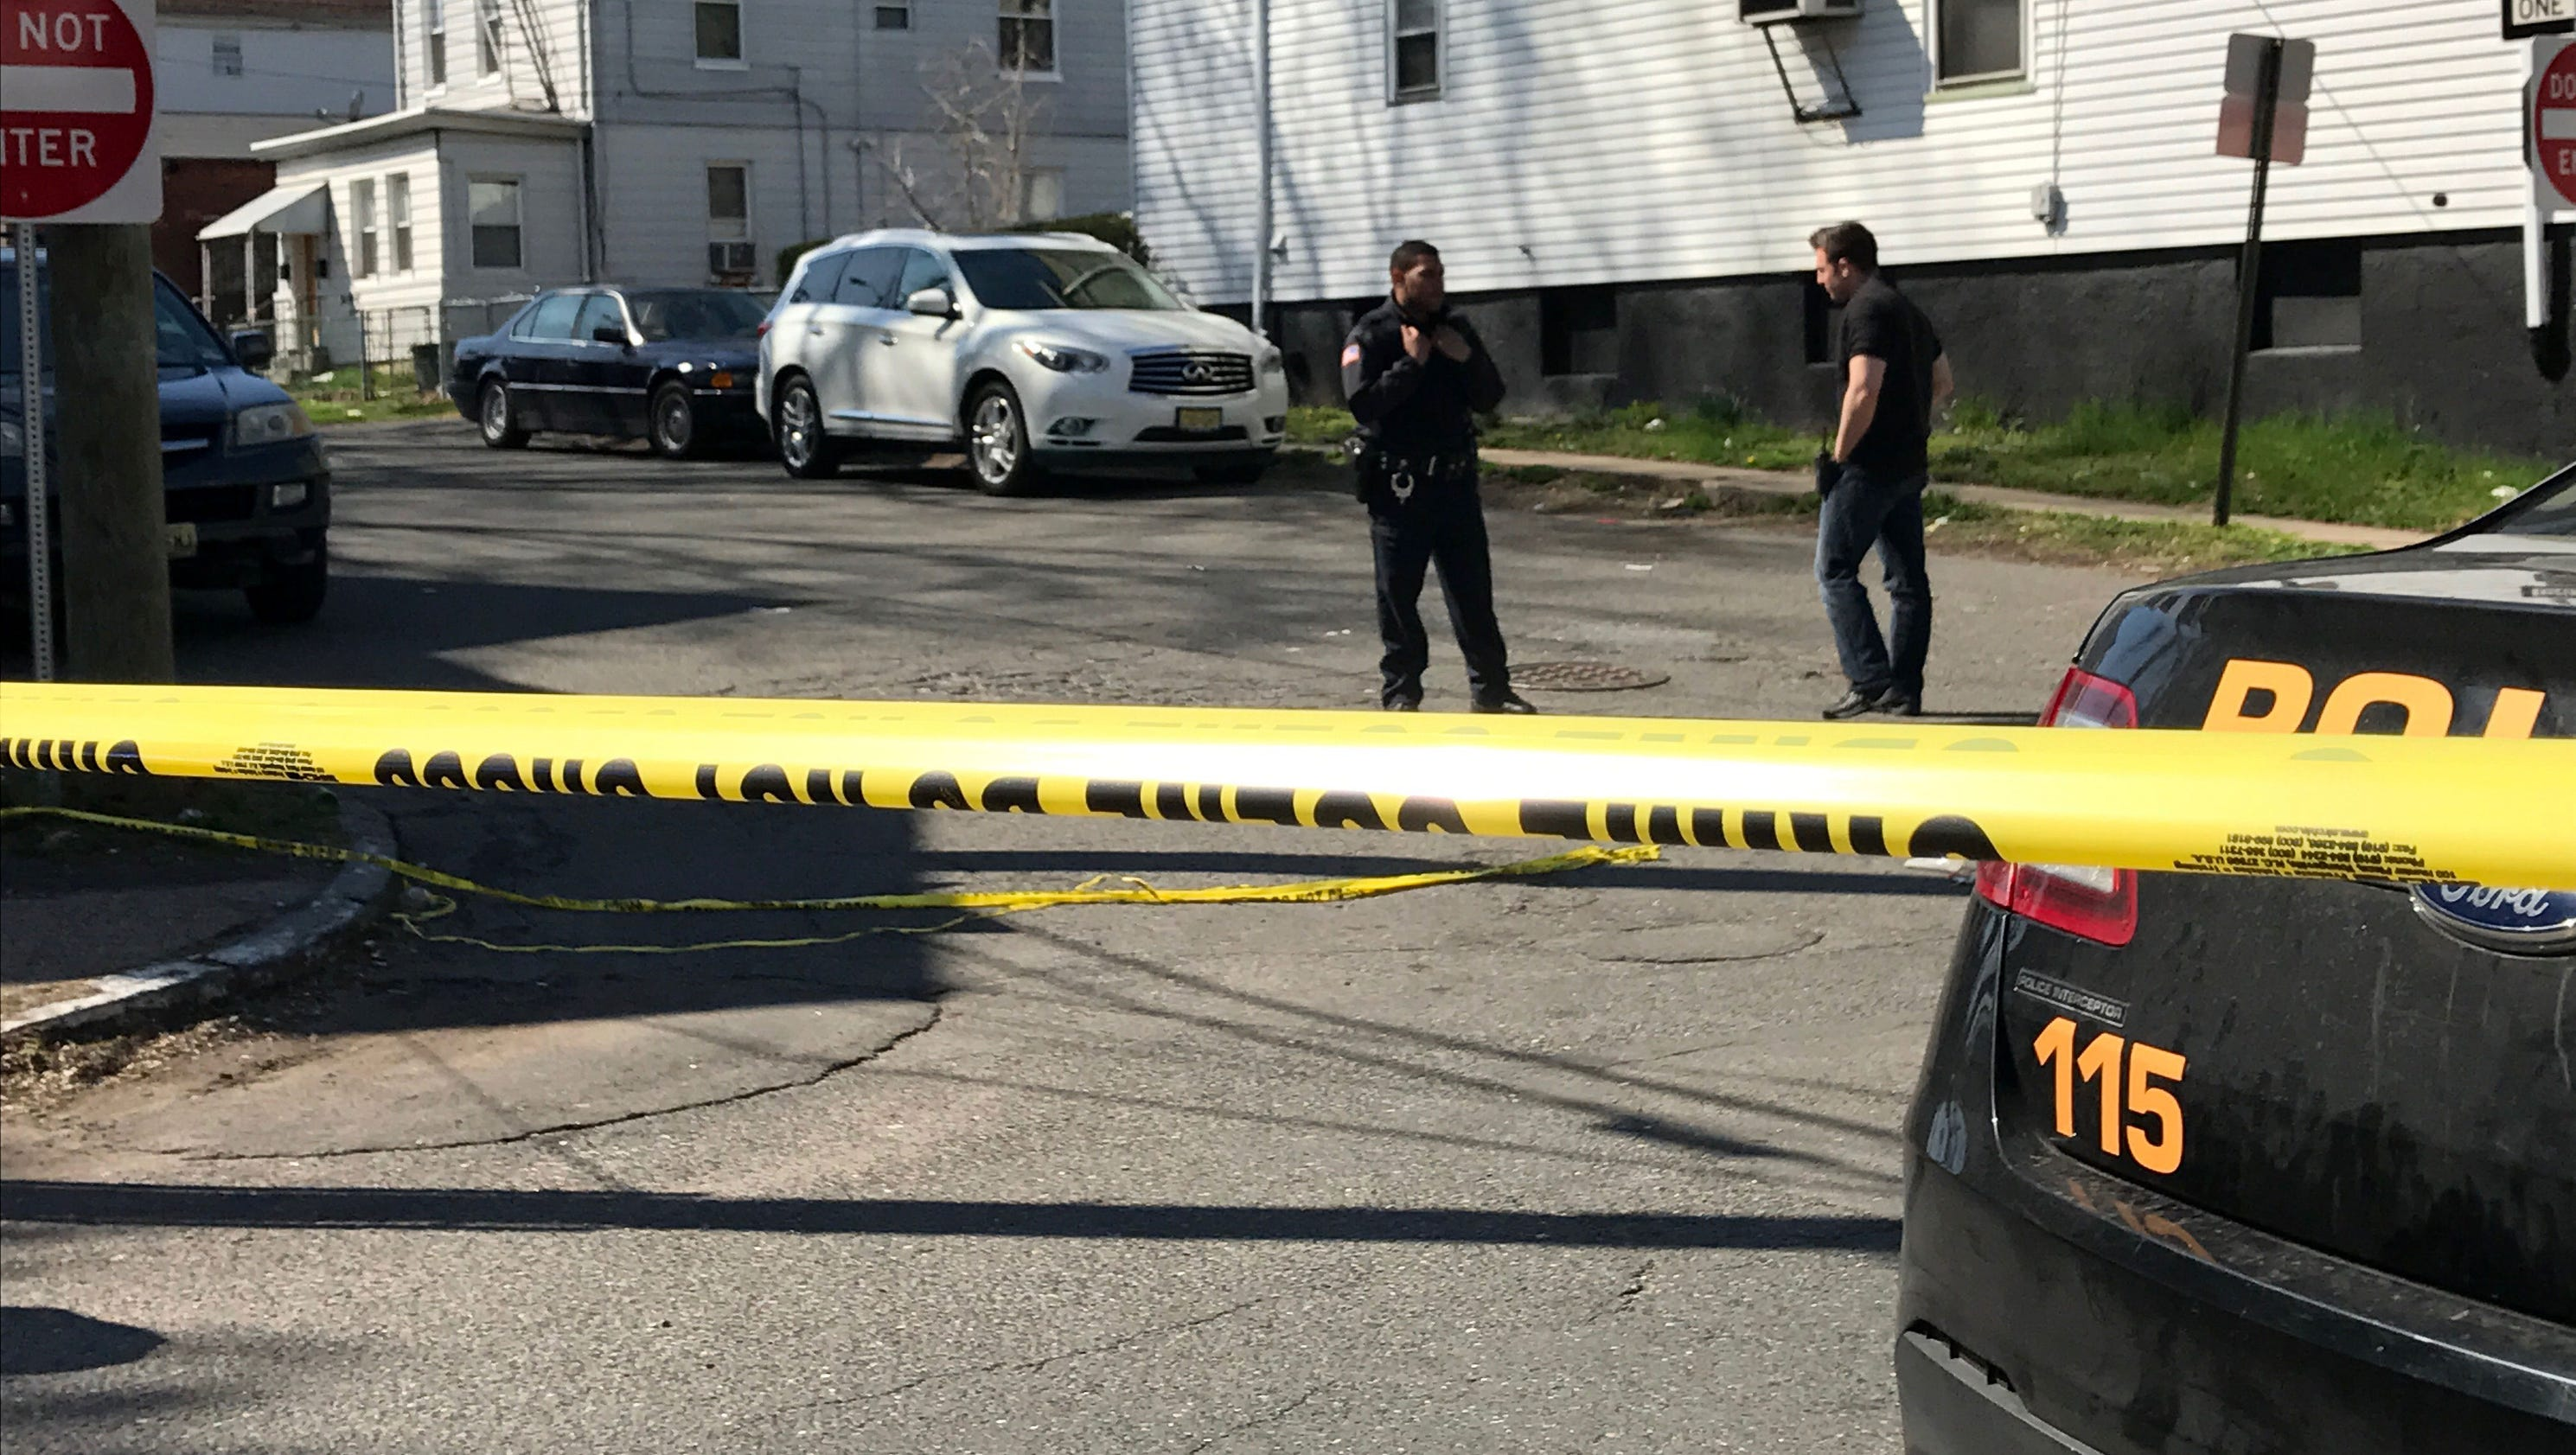 man killed in shooting with paterson cop sources say